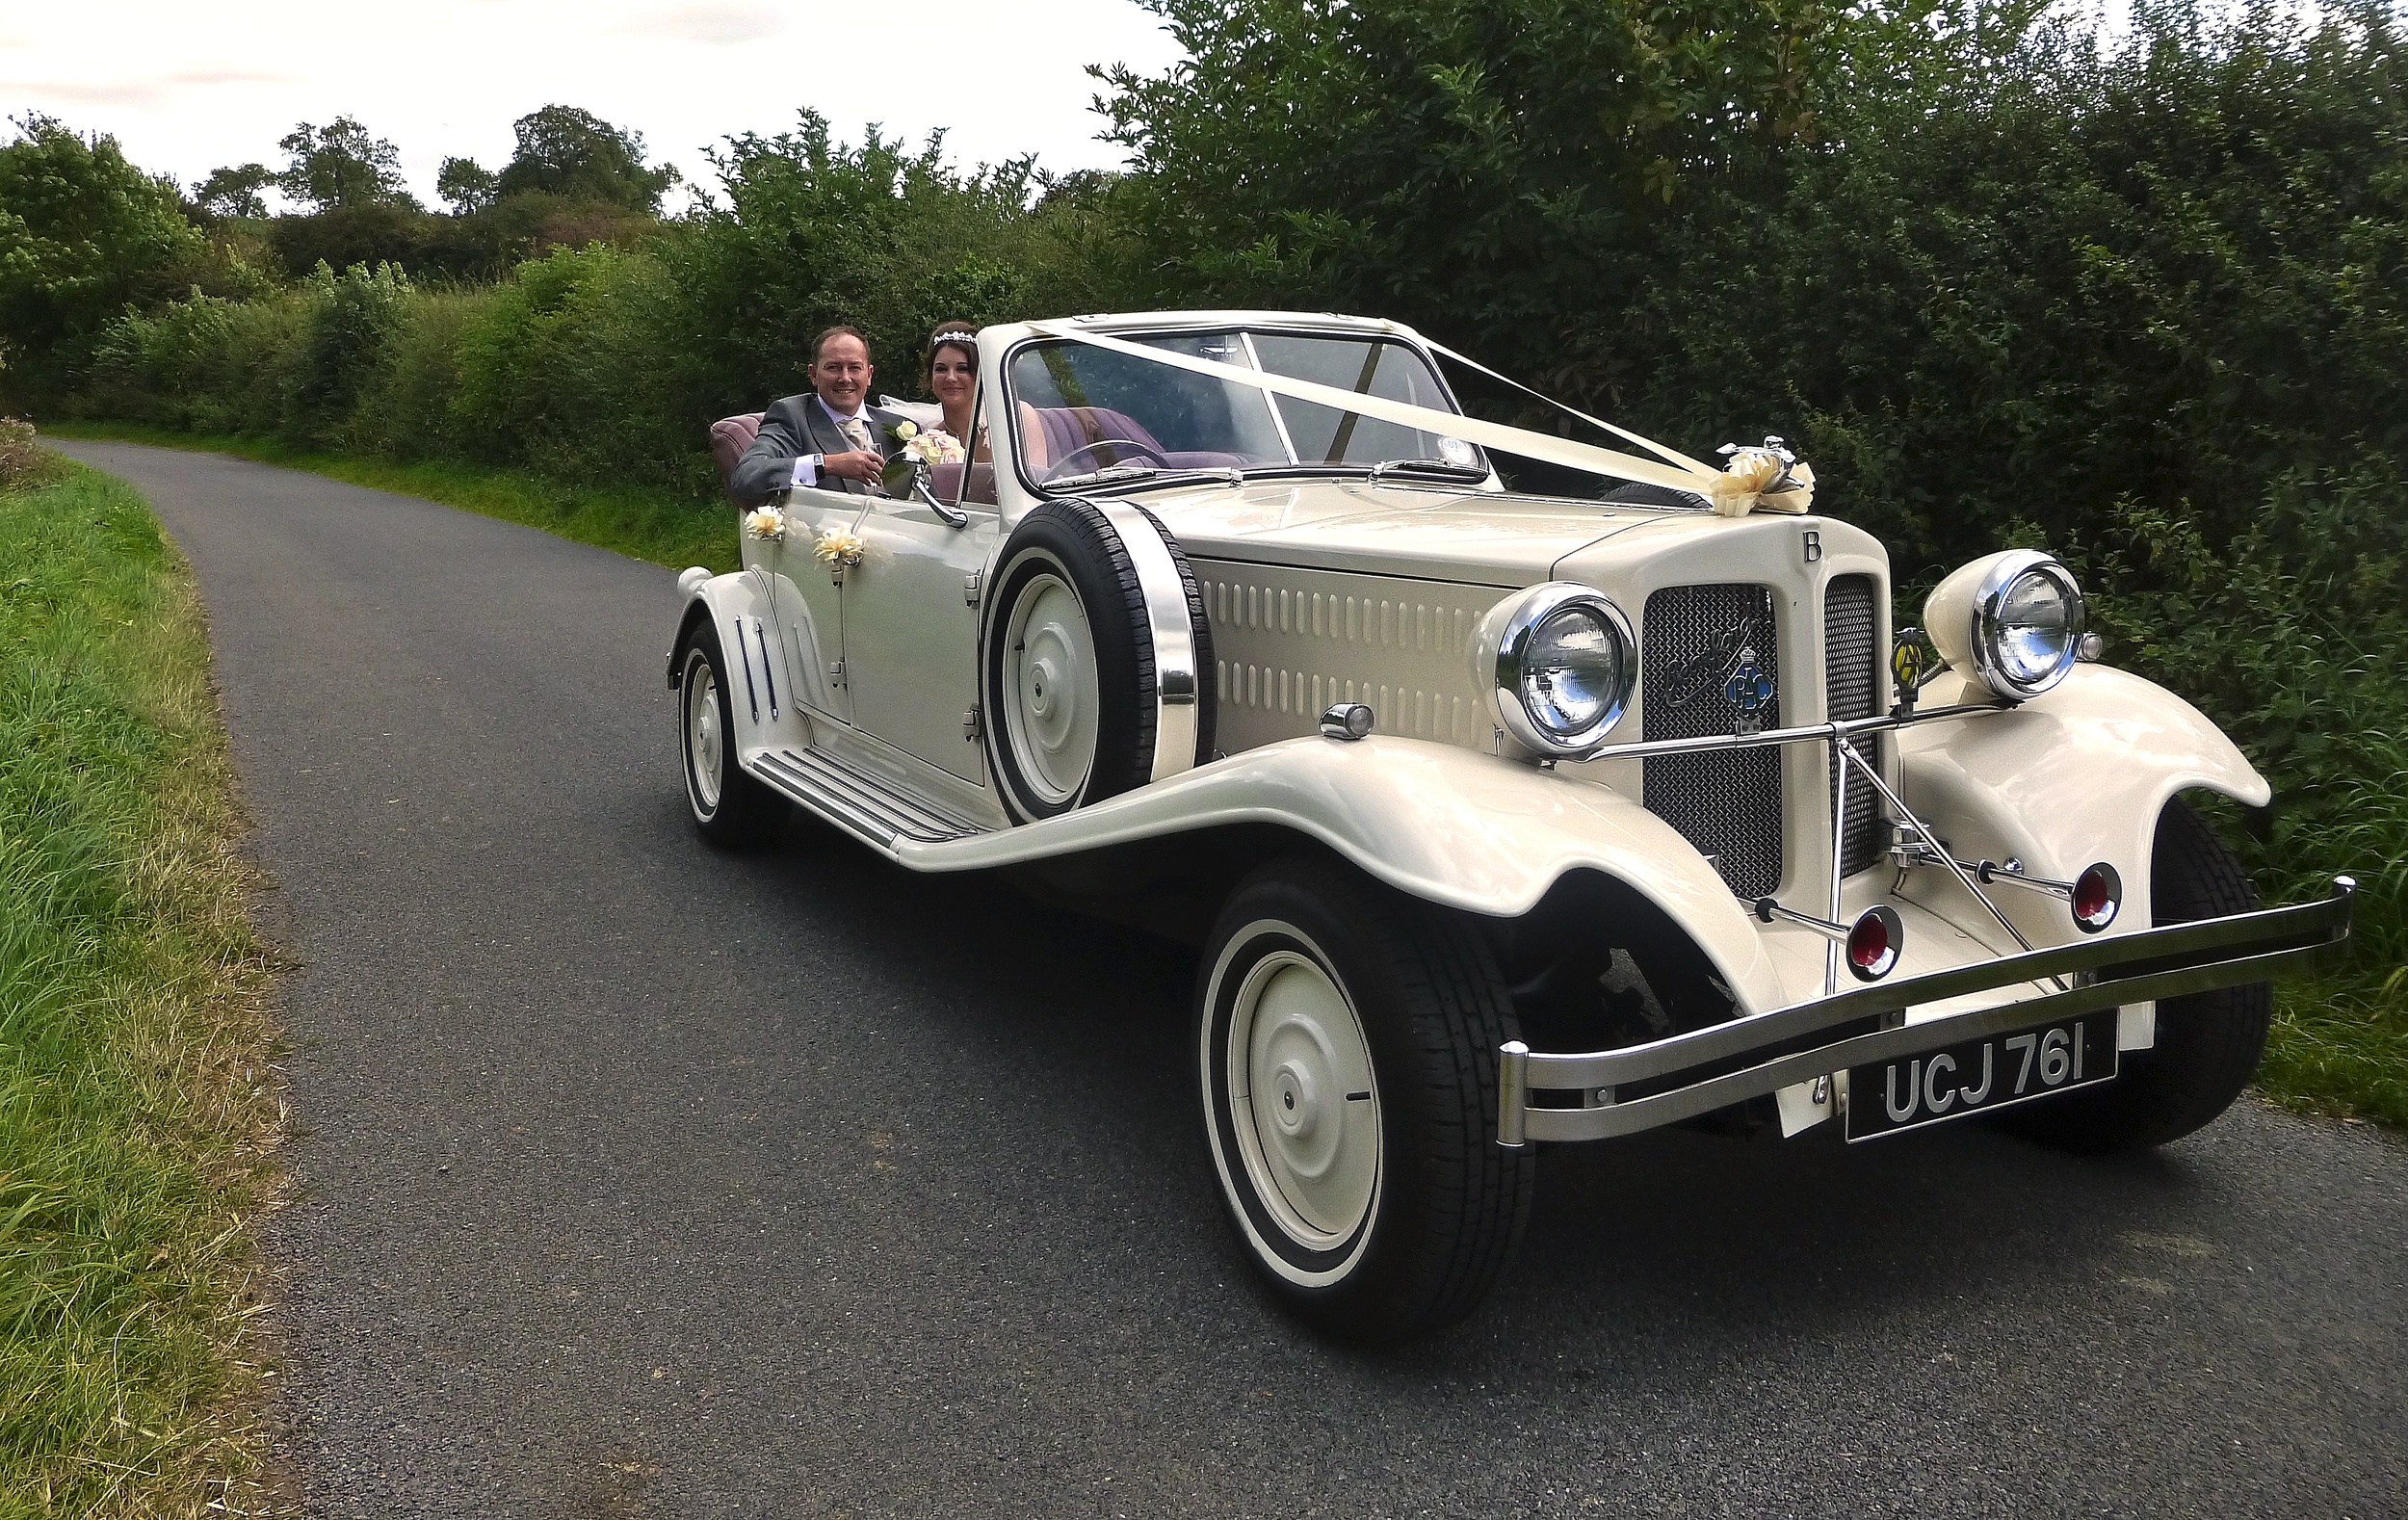 "I couldn't resist stopping for a photo of the Beauford and the happy couple on the peaceful drive down Withybrook Lane, Shilton. With Danielle and Edward""s permission of course! A great couple on a lovely day."